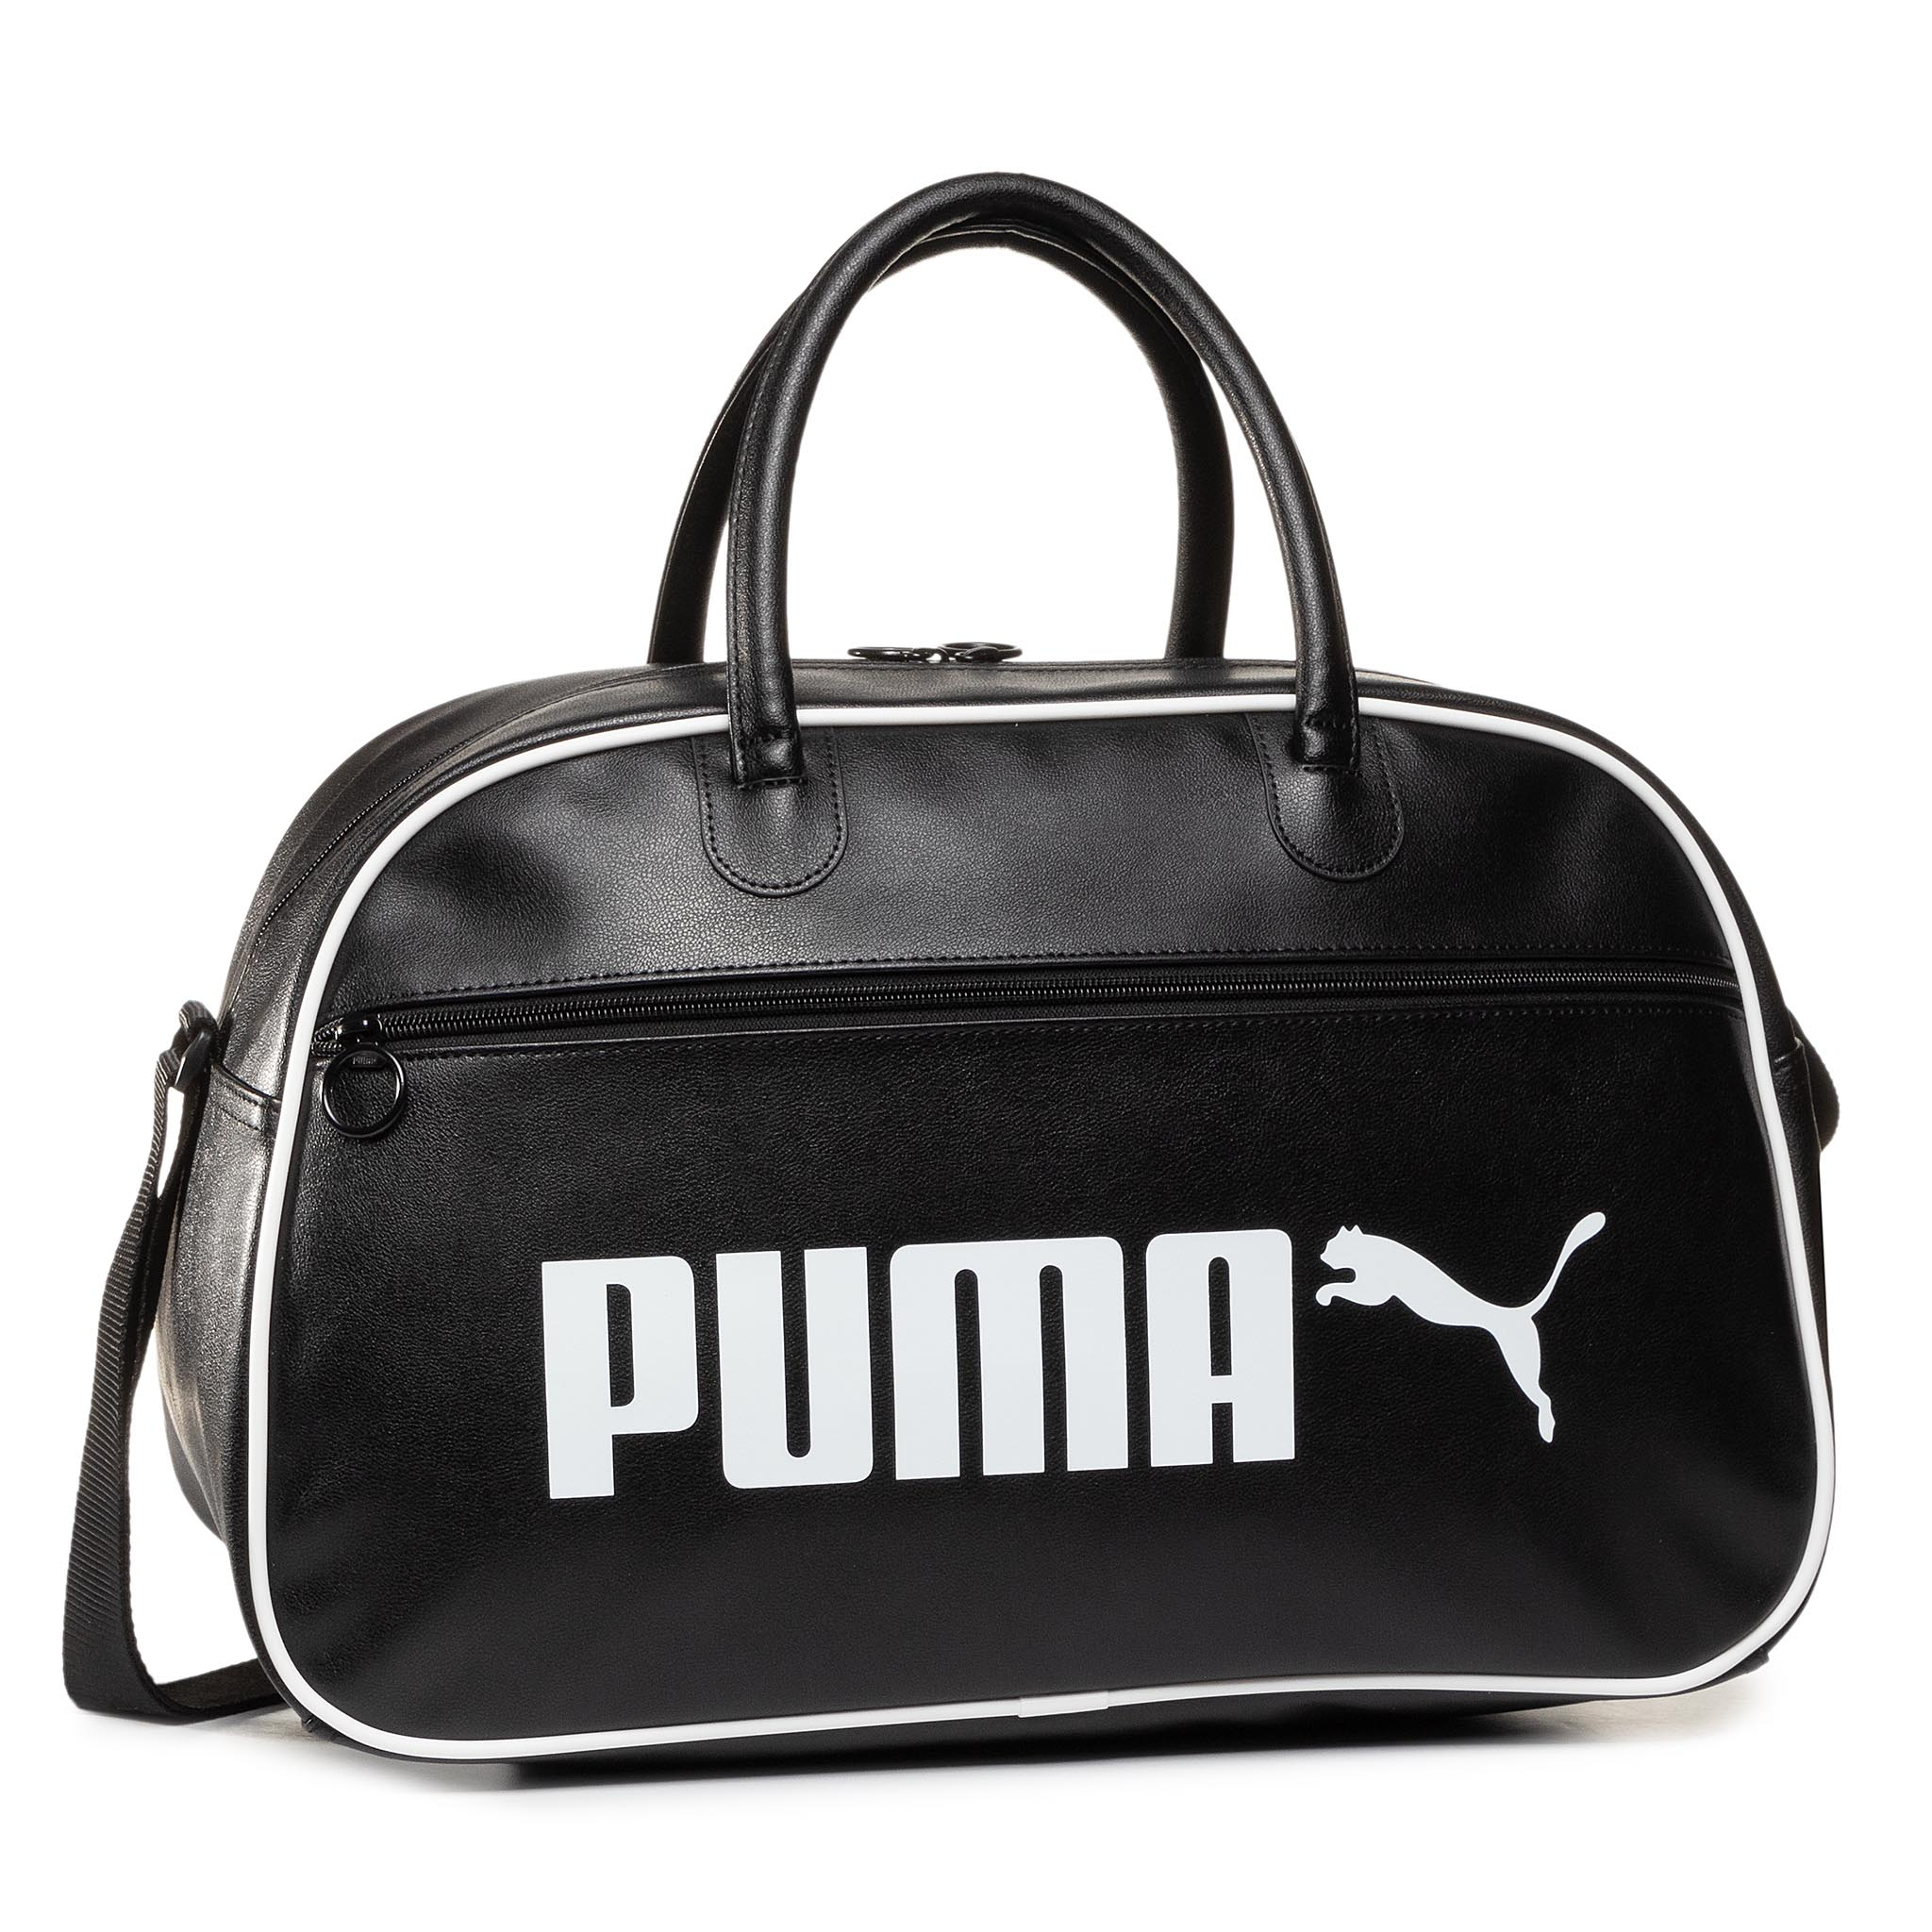 Geantă PUMA - Campus Grip Bag Retro 076695 01 Puma Black